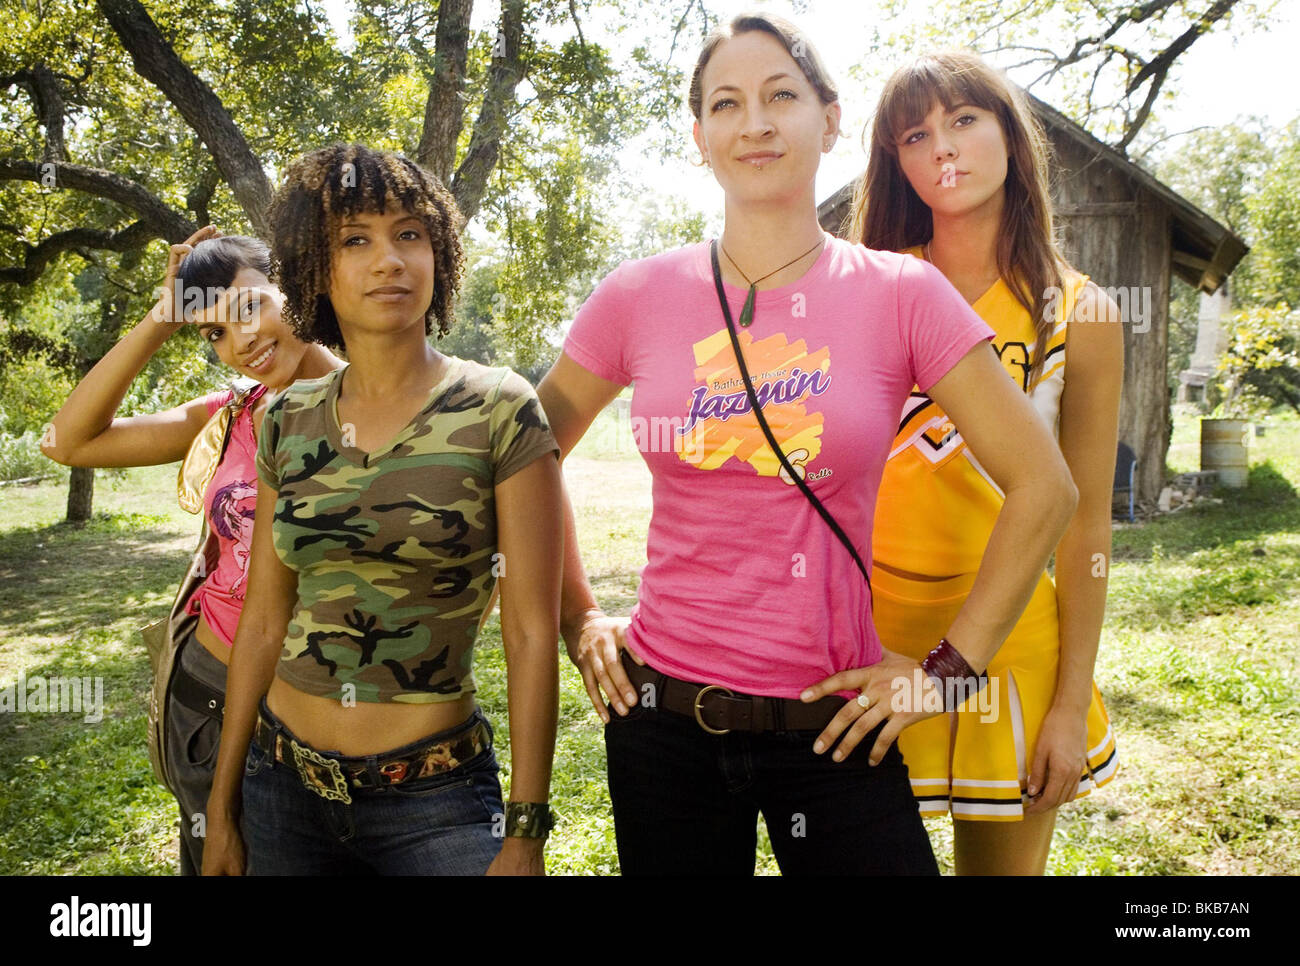 Grindhouse - Death Proof  Year 2007 - USA Rosario Dawson, Tracie Thoms, Zoe Bell, Mary Elizabeth Winstead - Stock Image